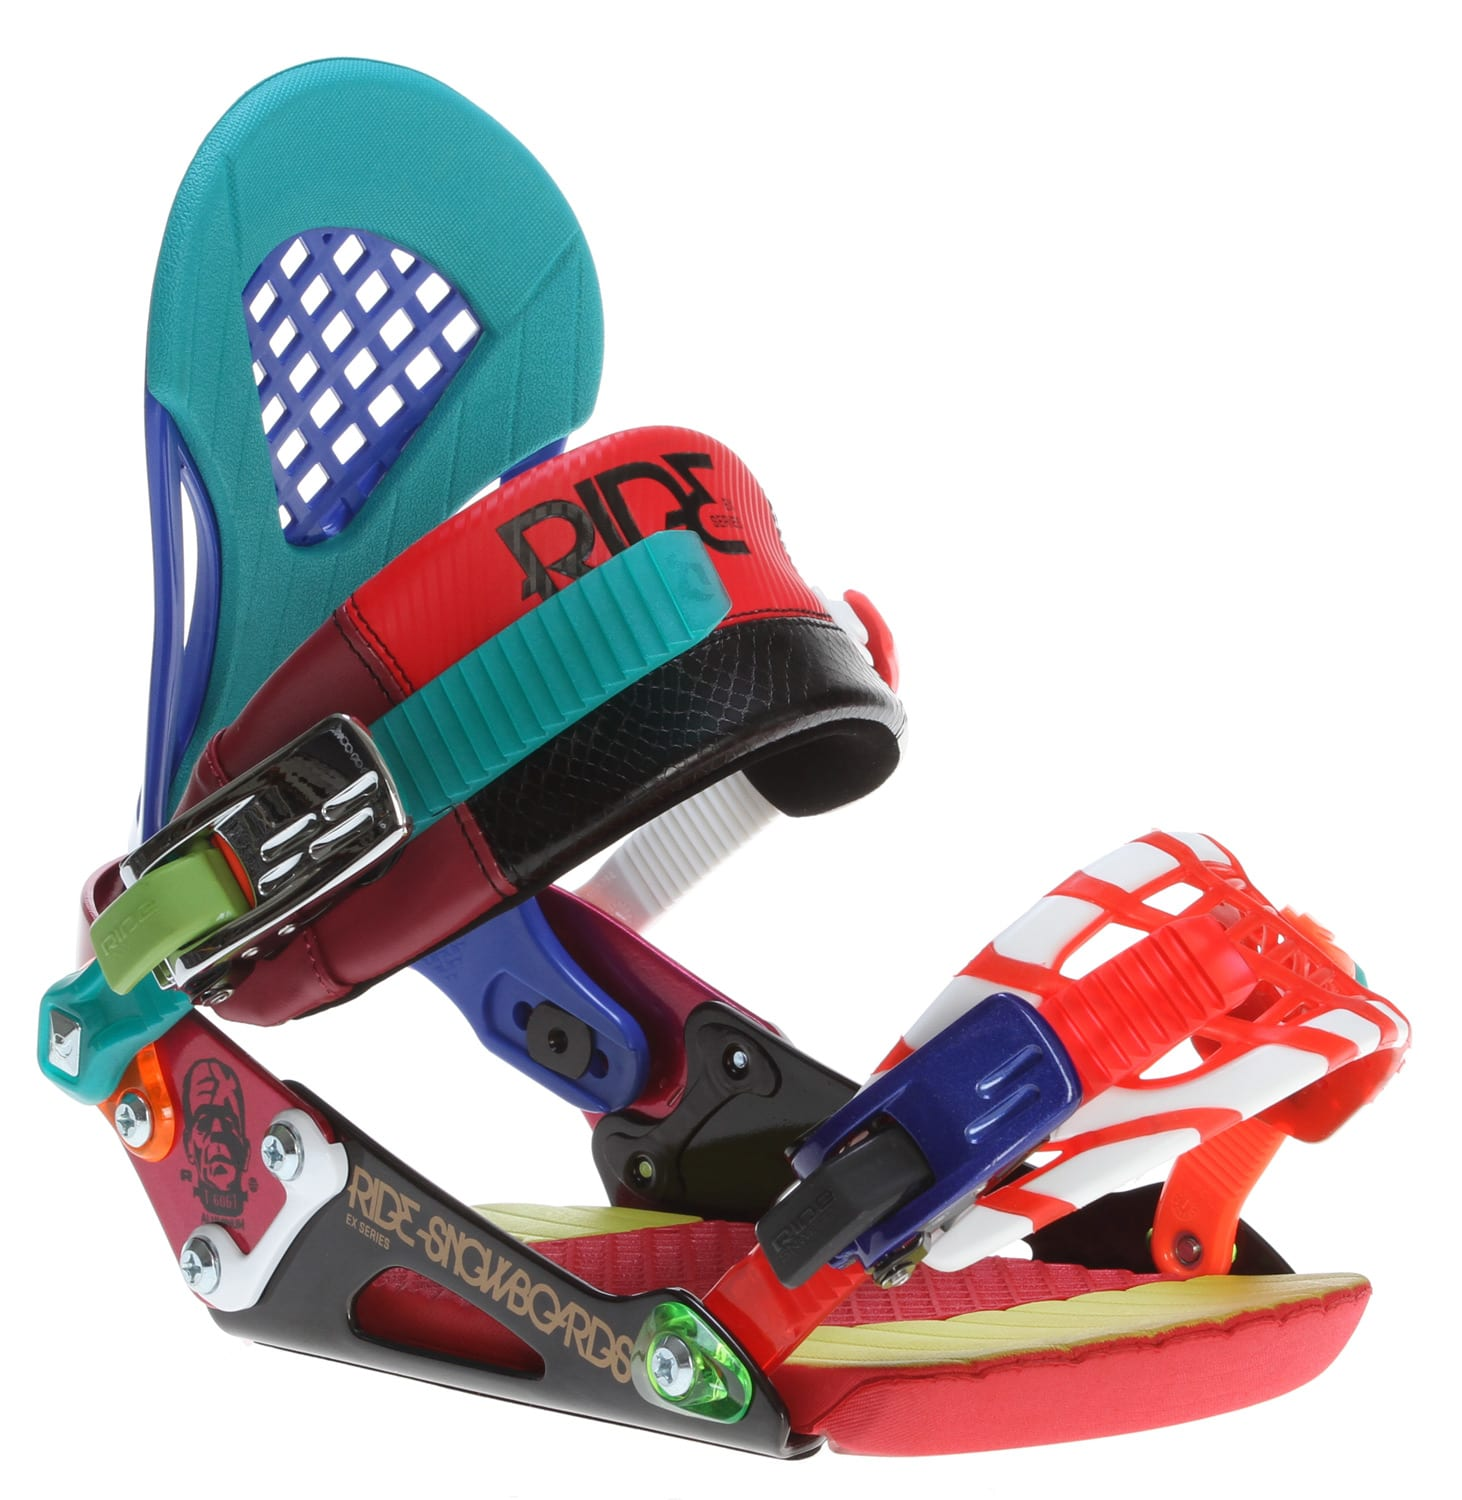 On Sale Ride EX Snowboard Bindings Up To 60% Off